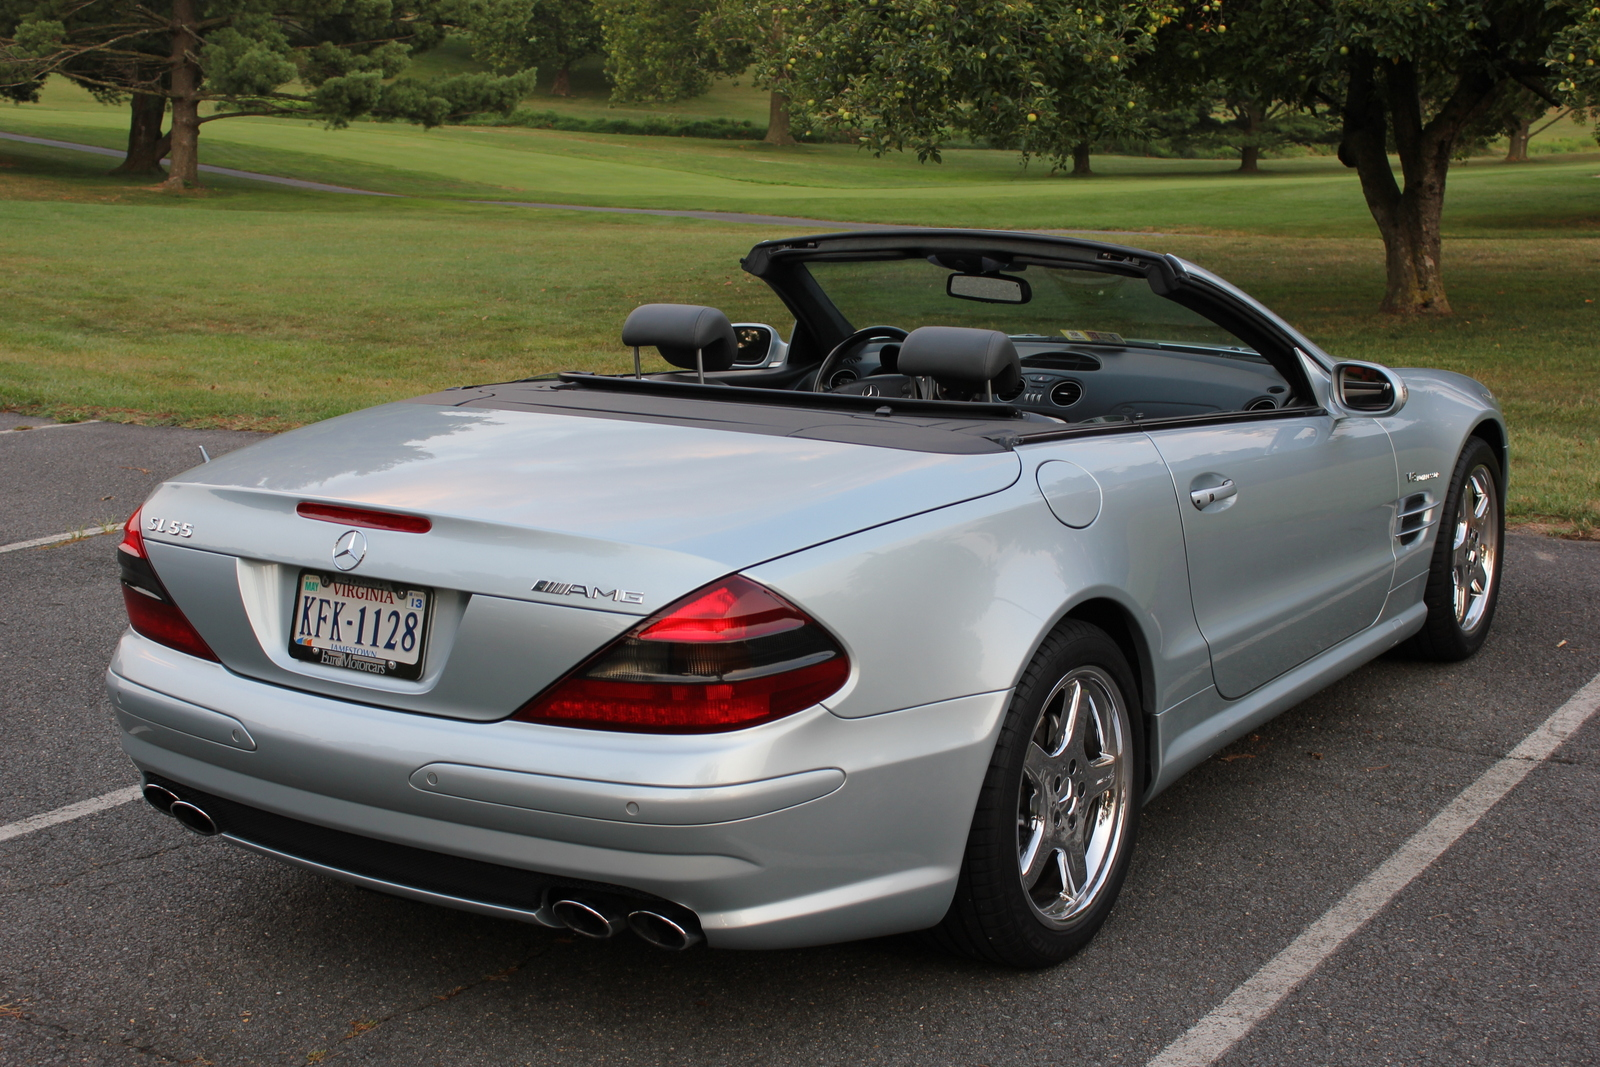 2003 mercedes benz sl class pictures cargurus for 2003 mercedes benz sl55